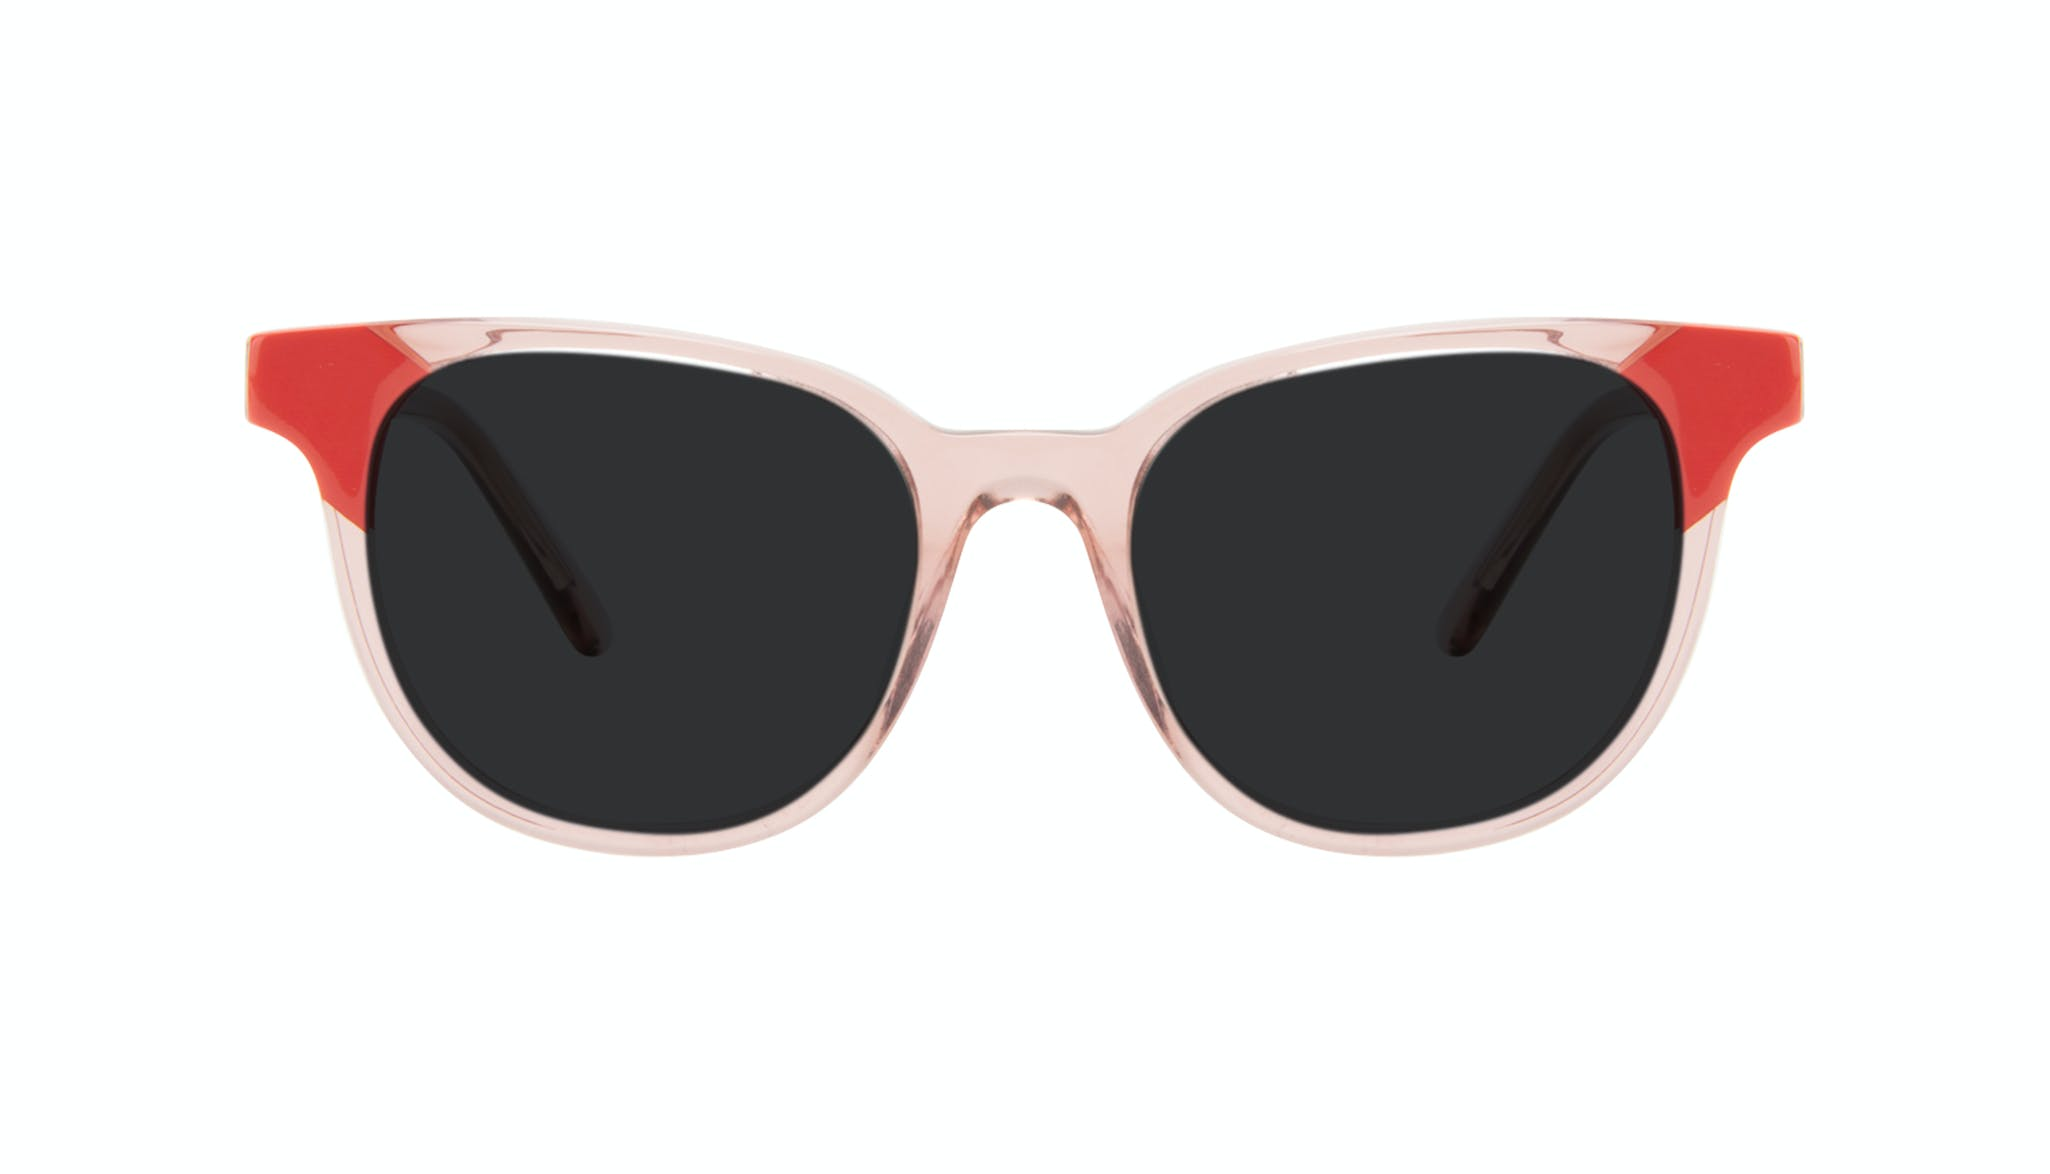 Affordable Fashion Glasses Square Sunglasses Women Lively Pink Coral Front